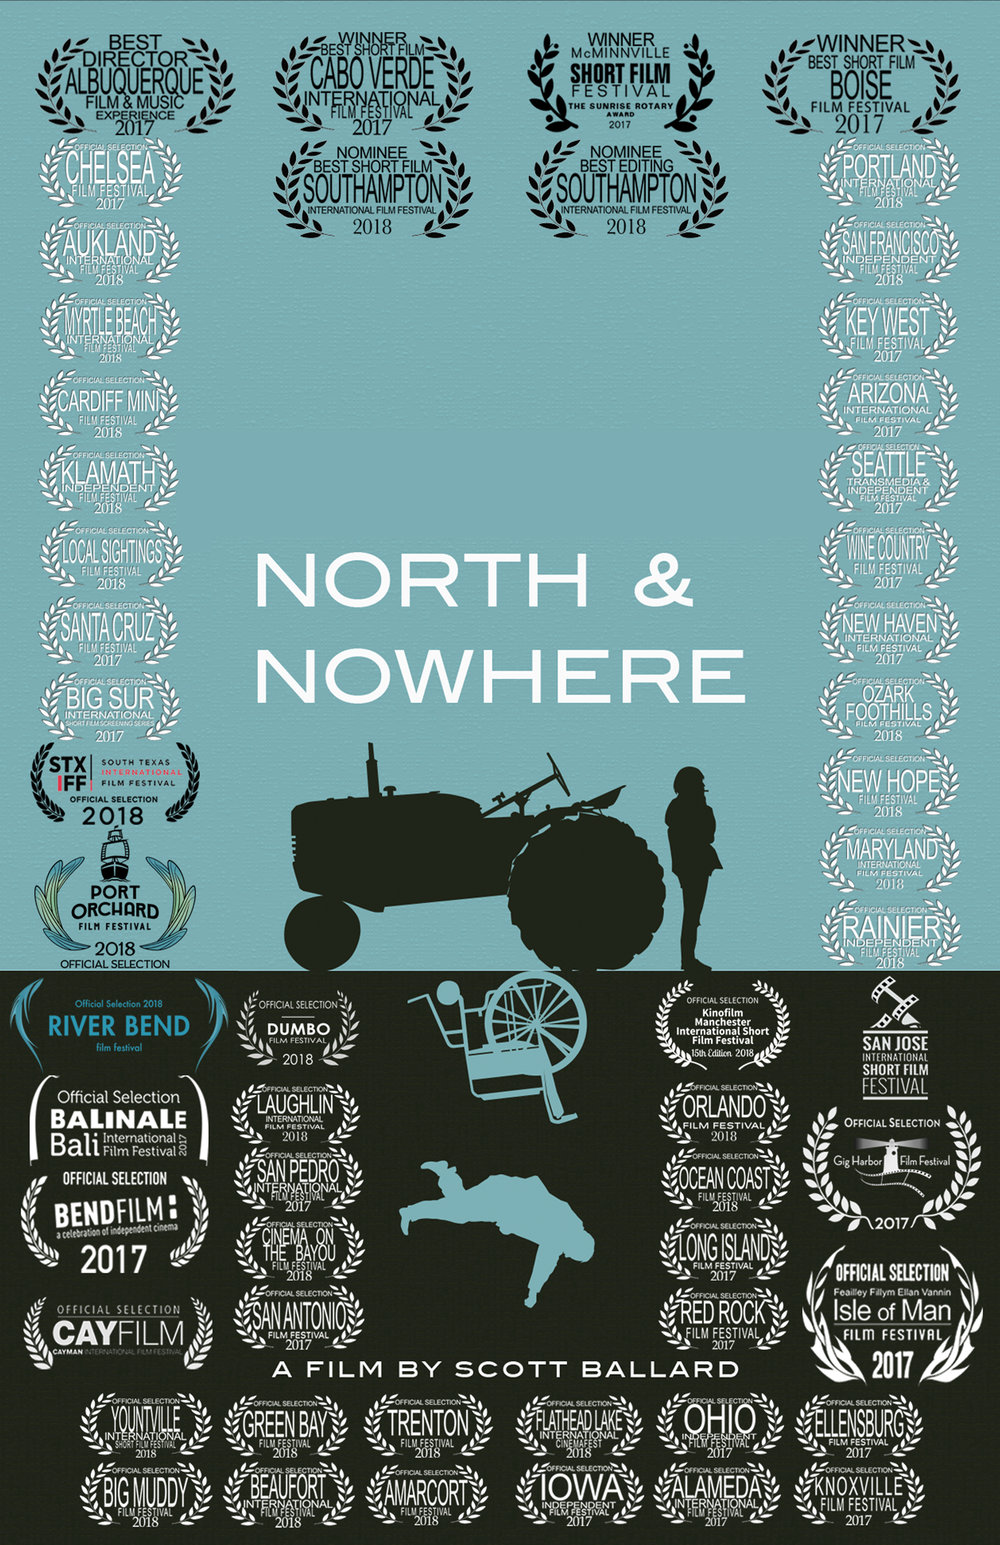 North & Nowhere - Directed by Scott BallardWhen Devan moved home to take care of her ailing father, she found herself stuck in a life she resented. As her father falls increasingly ill, she must find a way to reconcile the future with the responsibilities of family.Short Film - 12 min